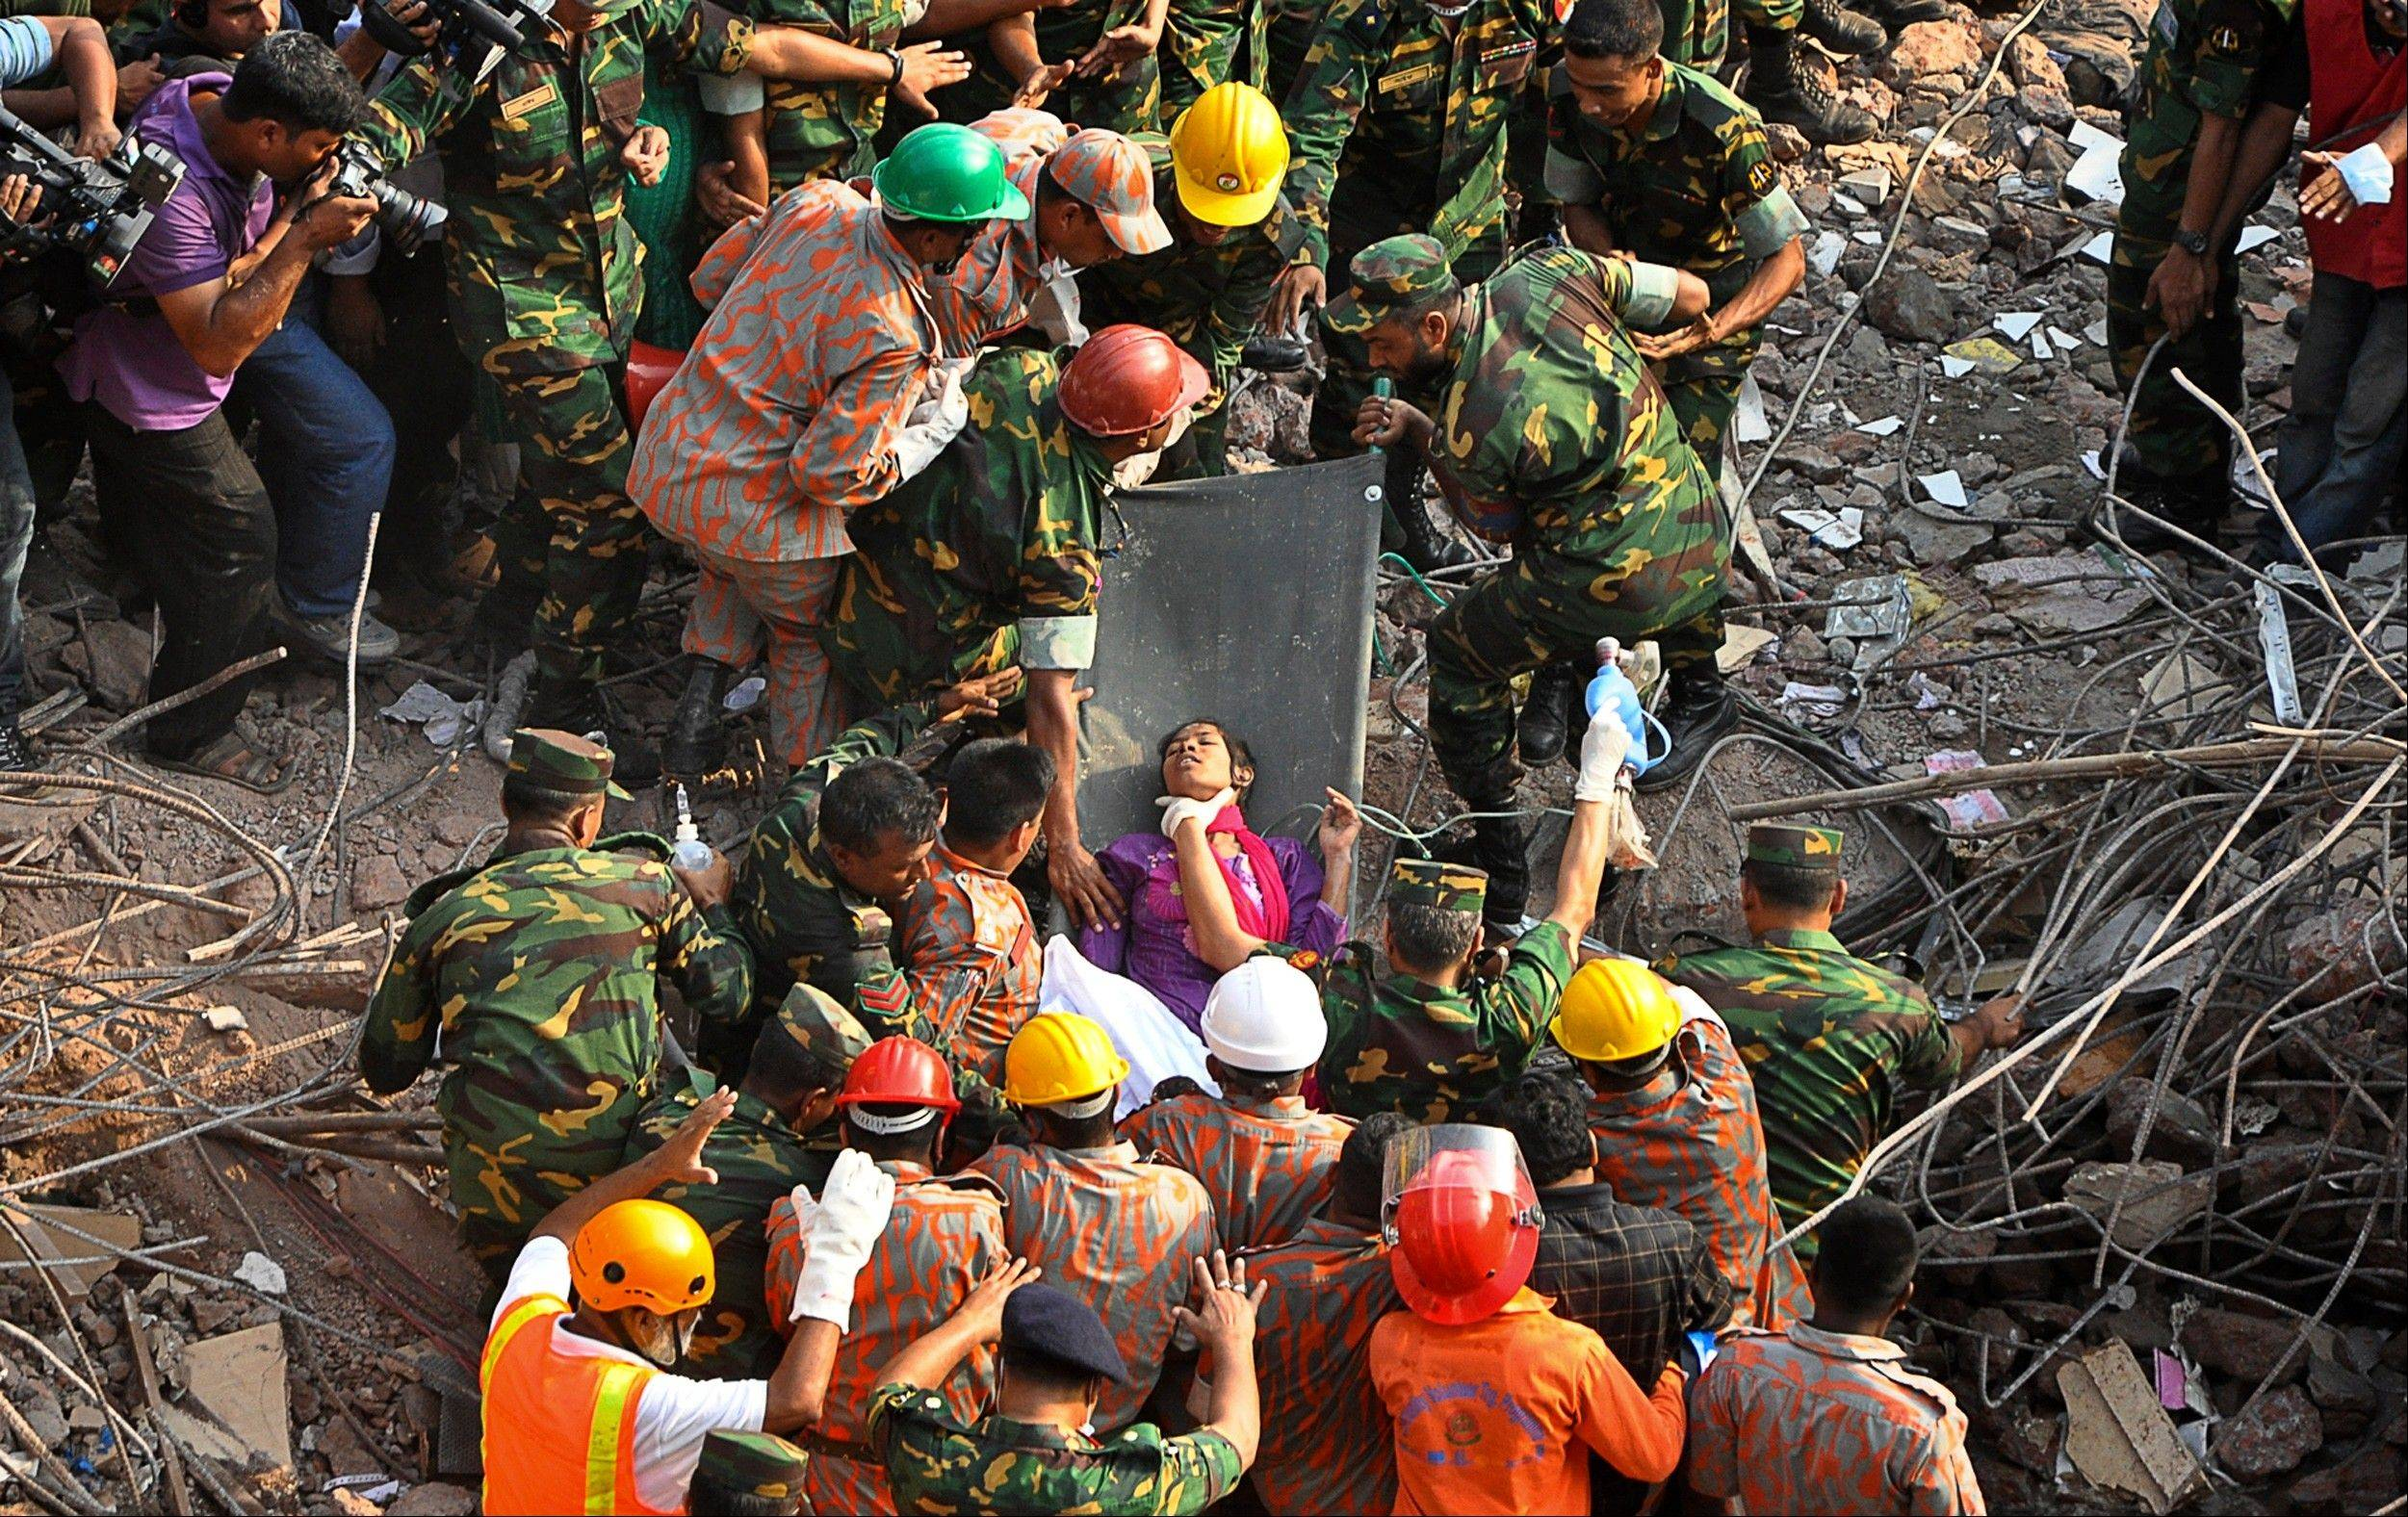 Rescuers carry a survivor pulled out from the rubble of a building that collapsed in Savar, near Dhaka, Bangladesh, Friday, May 10, 2013. Rescue workers in Bangladesh freed the woman buried for 17 days inside the wreckage of a garment factory building that collapsed, killing more than 1,000 people. Soldiers at the site said her name was Reshma and described her as being in remarkably good shape despite her ordeal.